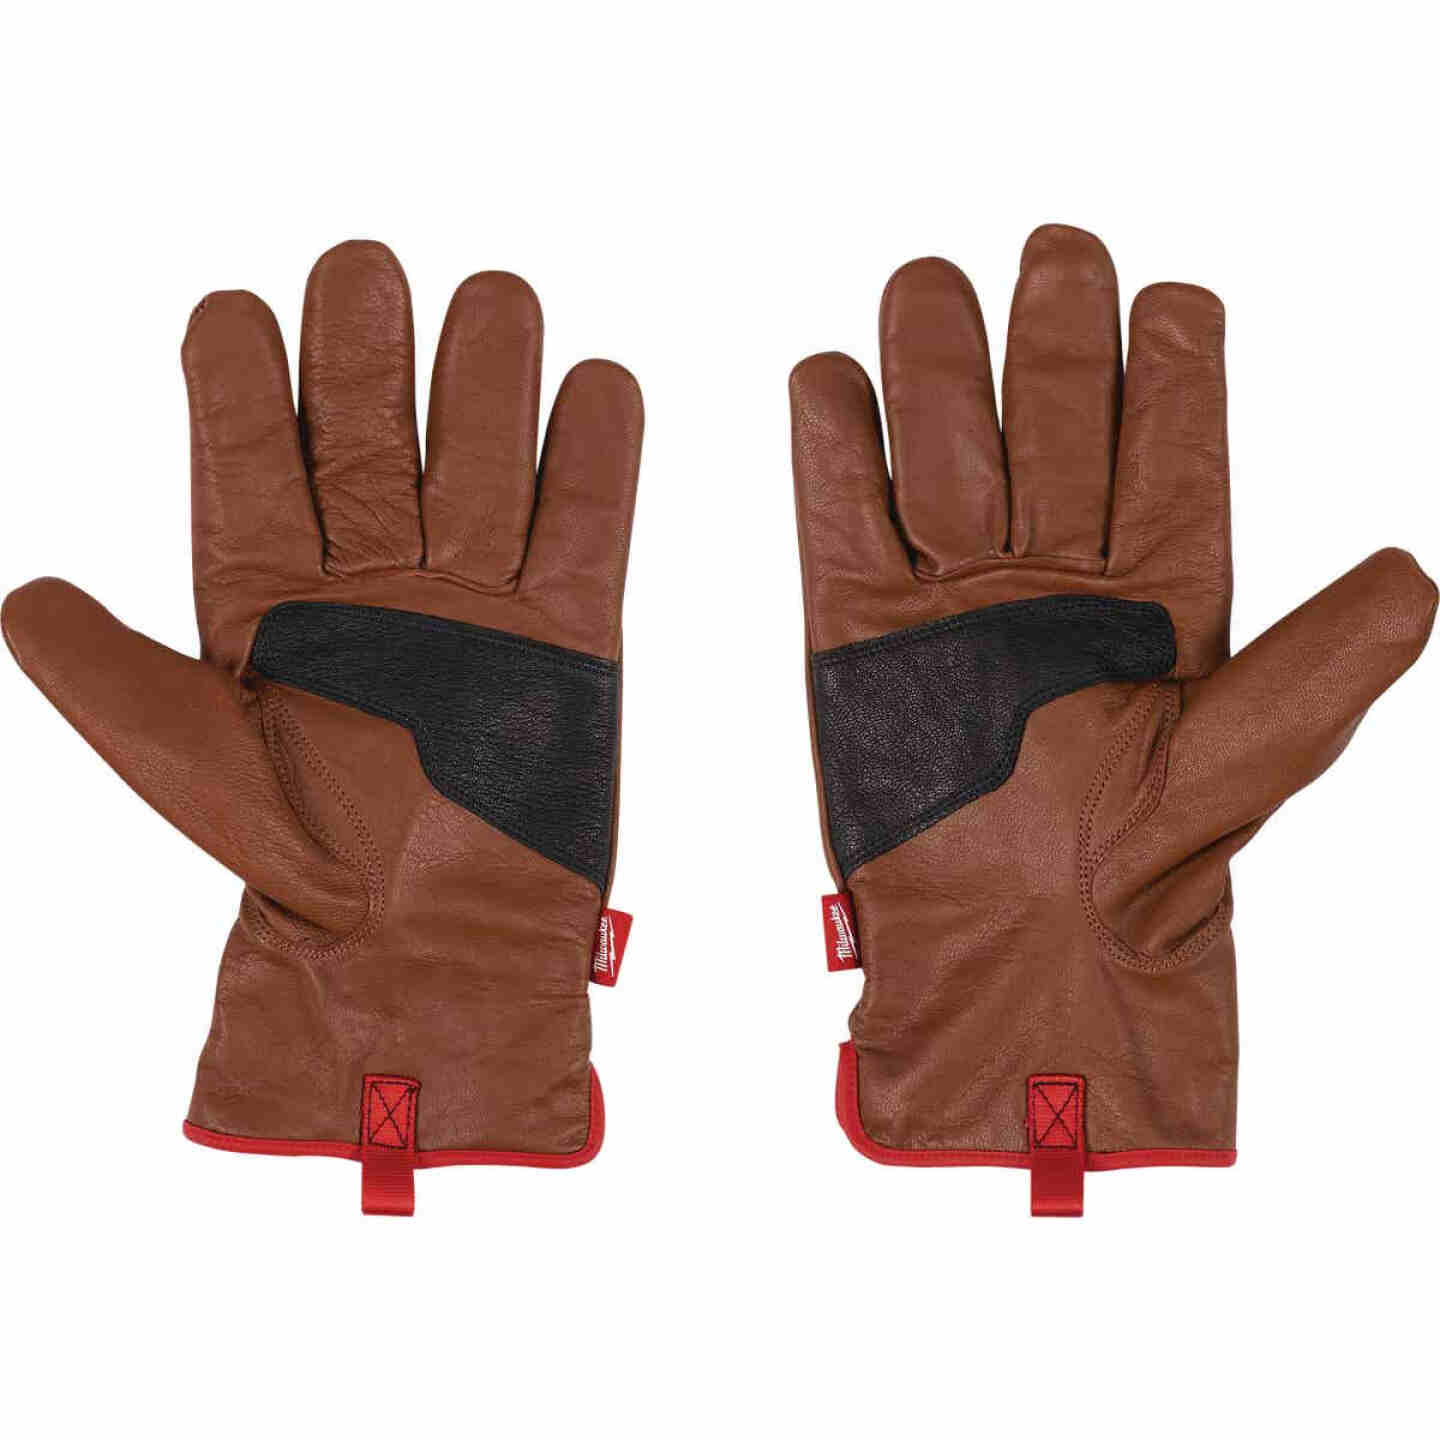 Milwaukee Impact Cut Level 3 Men's Large Goatskin Leather Work Gloves Image 2